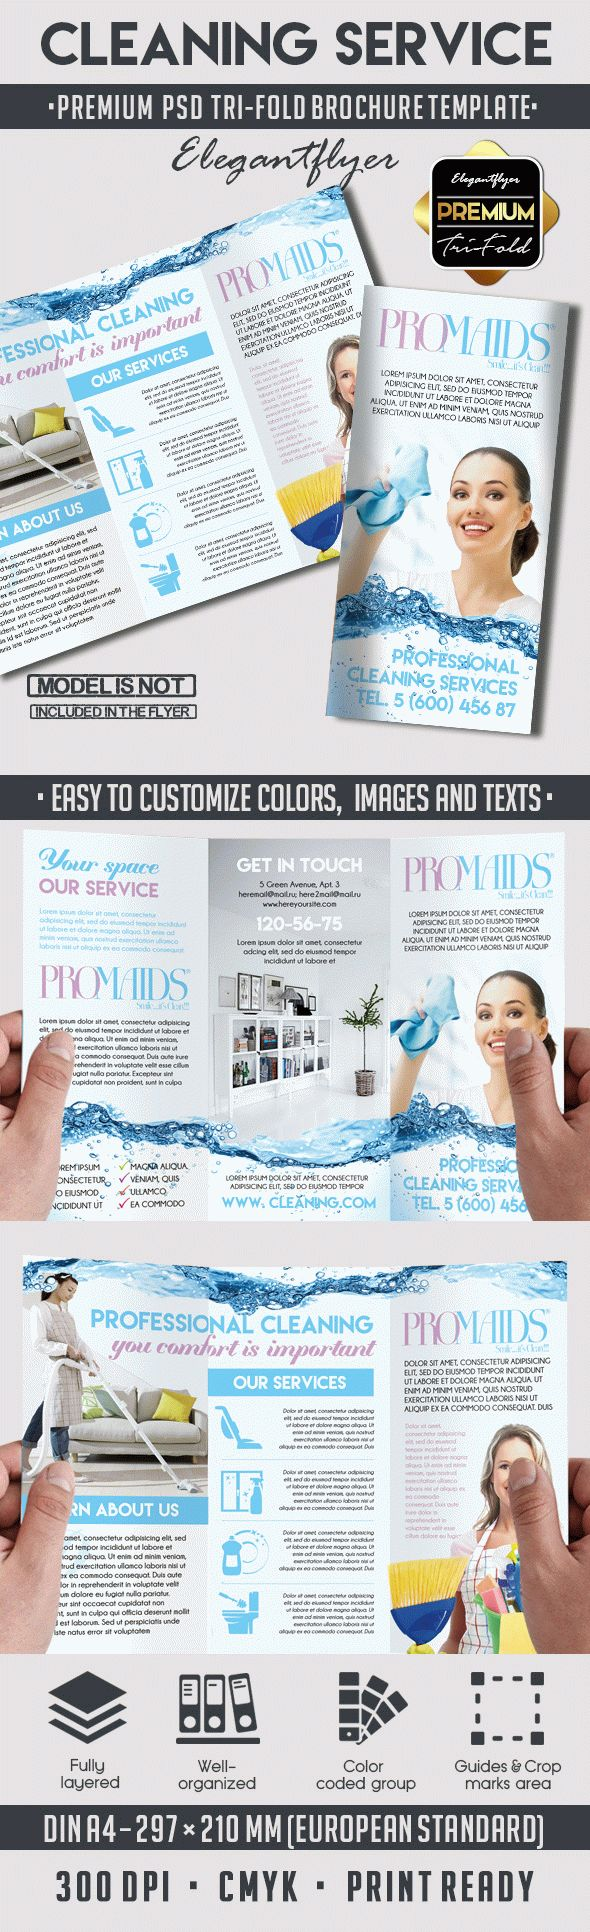 service brochure template - cleaning service tri fold brochure by elegantflyer